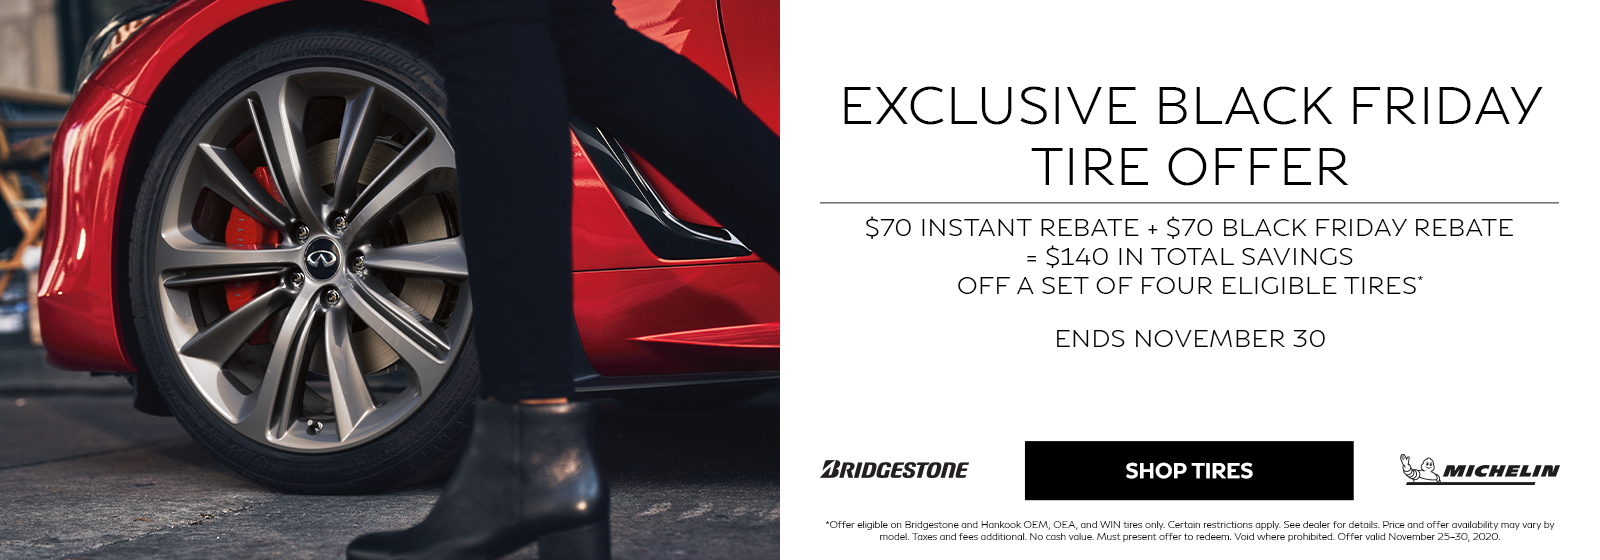 $70 Instant Rebate + $70 Black Friday Rebate = $140 in Total Savings Off a Set of Four Eligible Tires. Ends November 30, 2020.